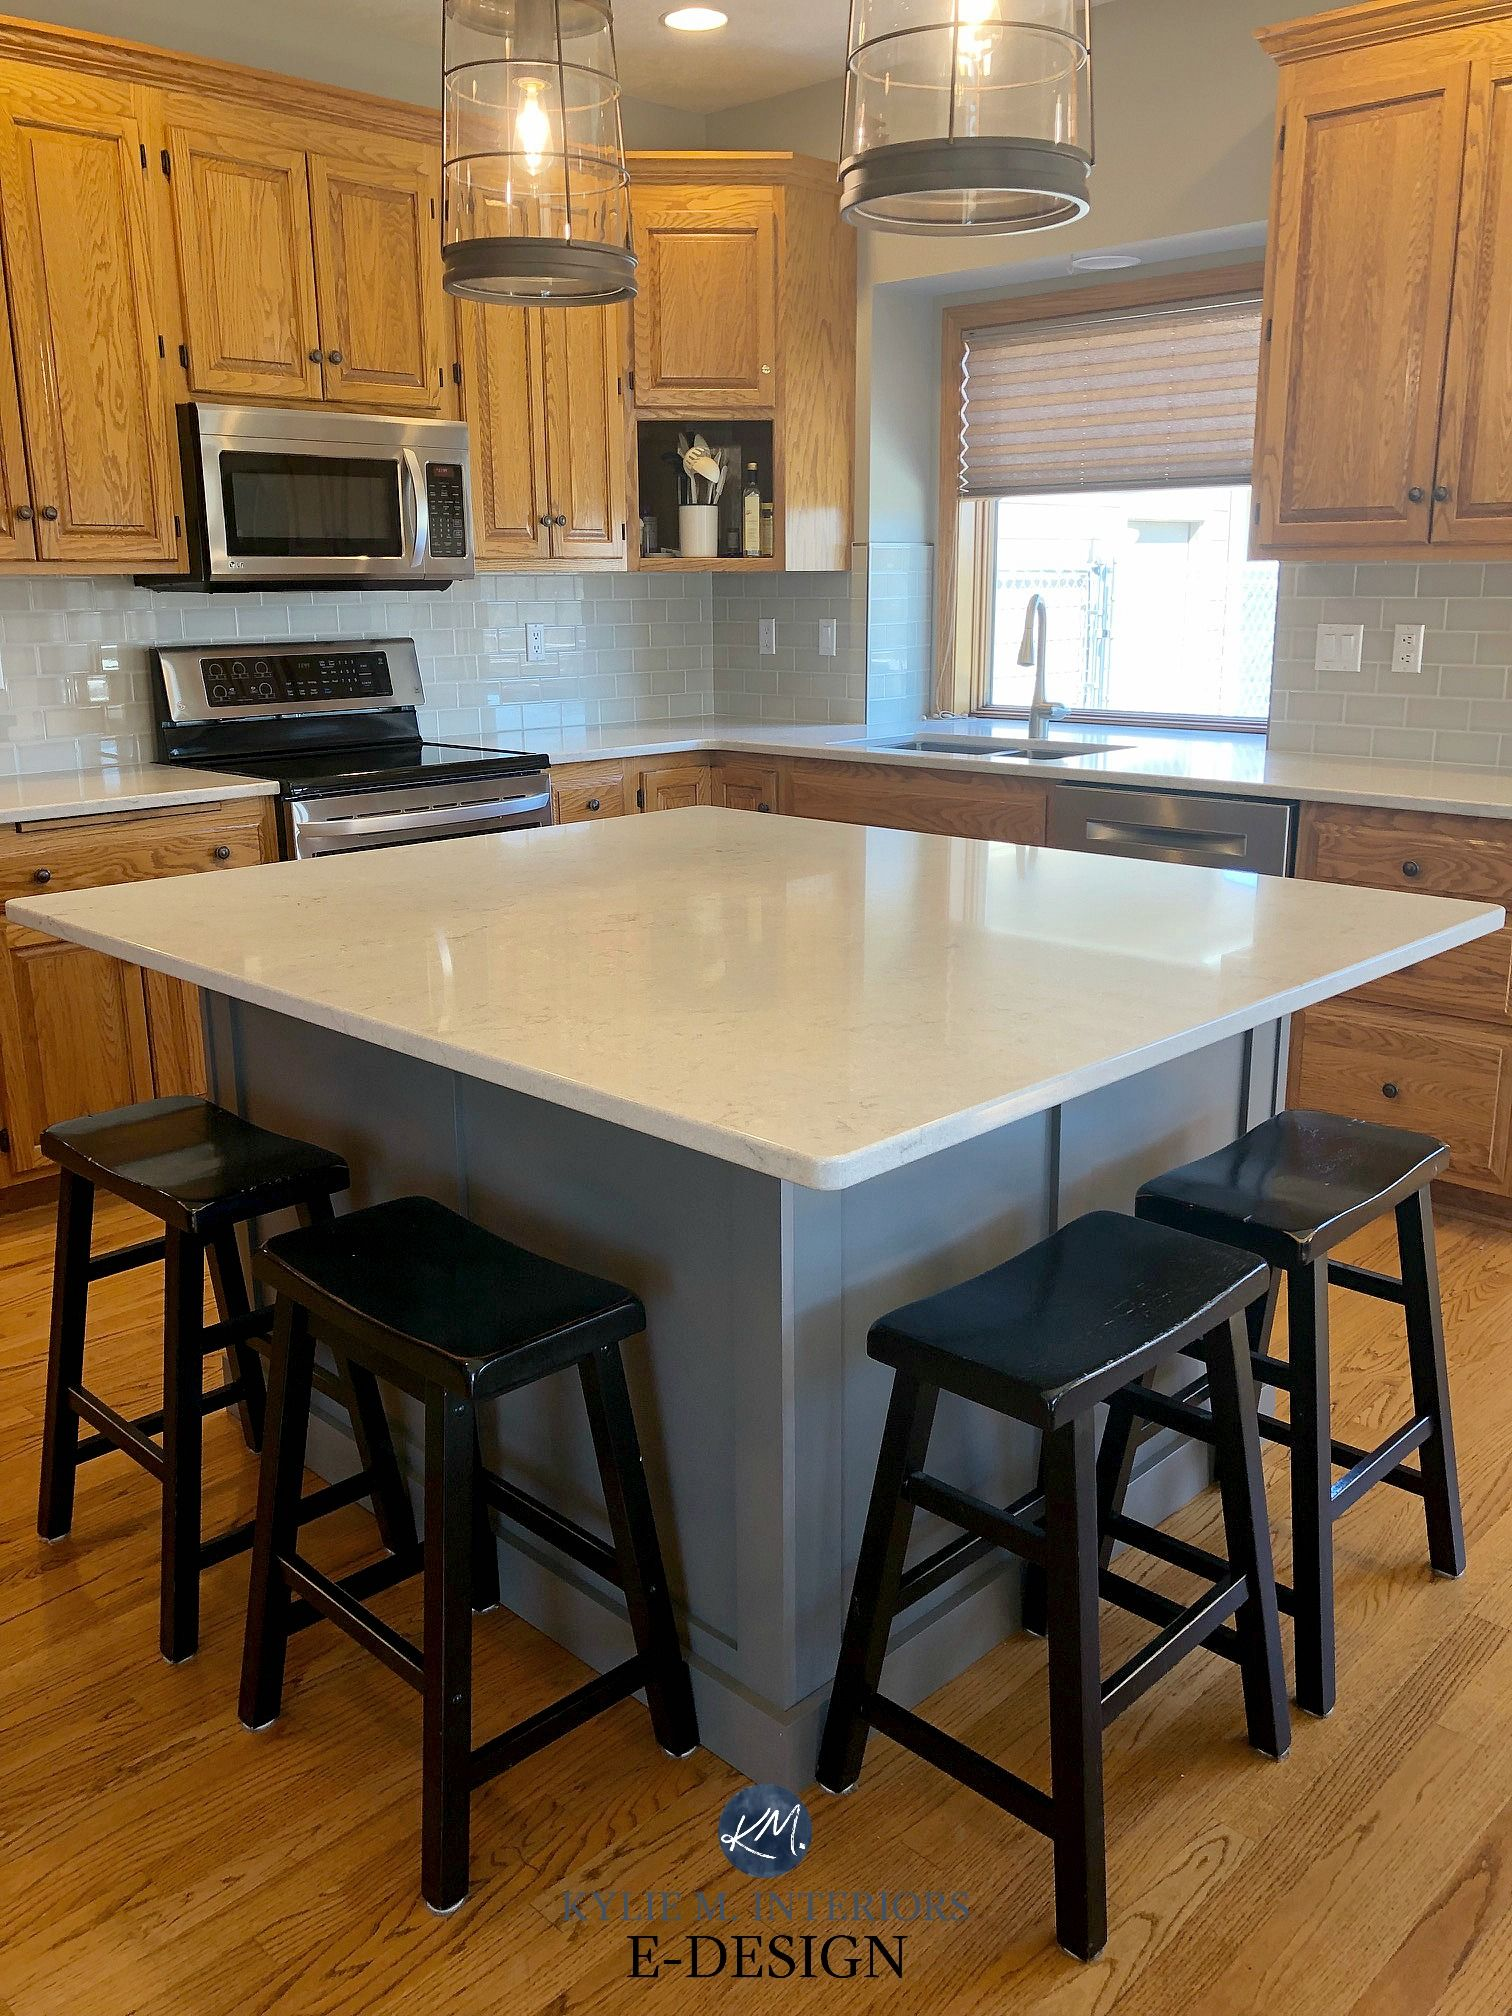 E-Design: 3 Painted Oak & Maple Kitchen Cabinet Projects ... on Maple Cabinets Kitchen Ideas  id=31857